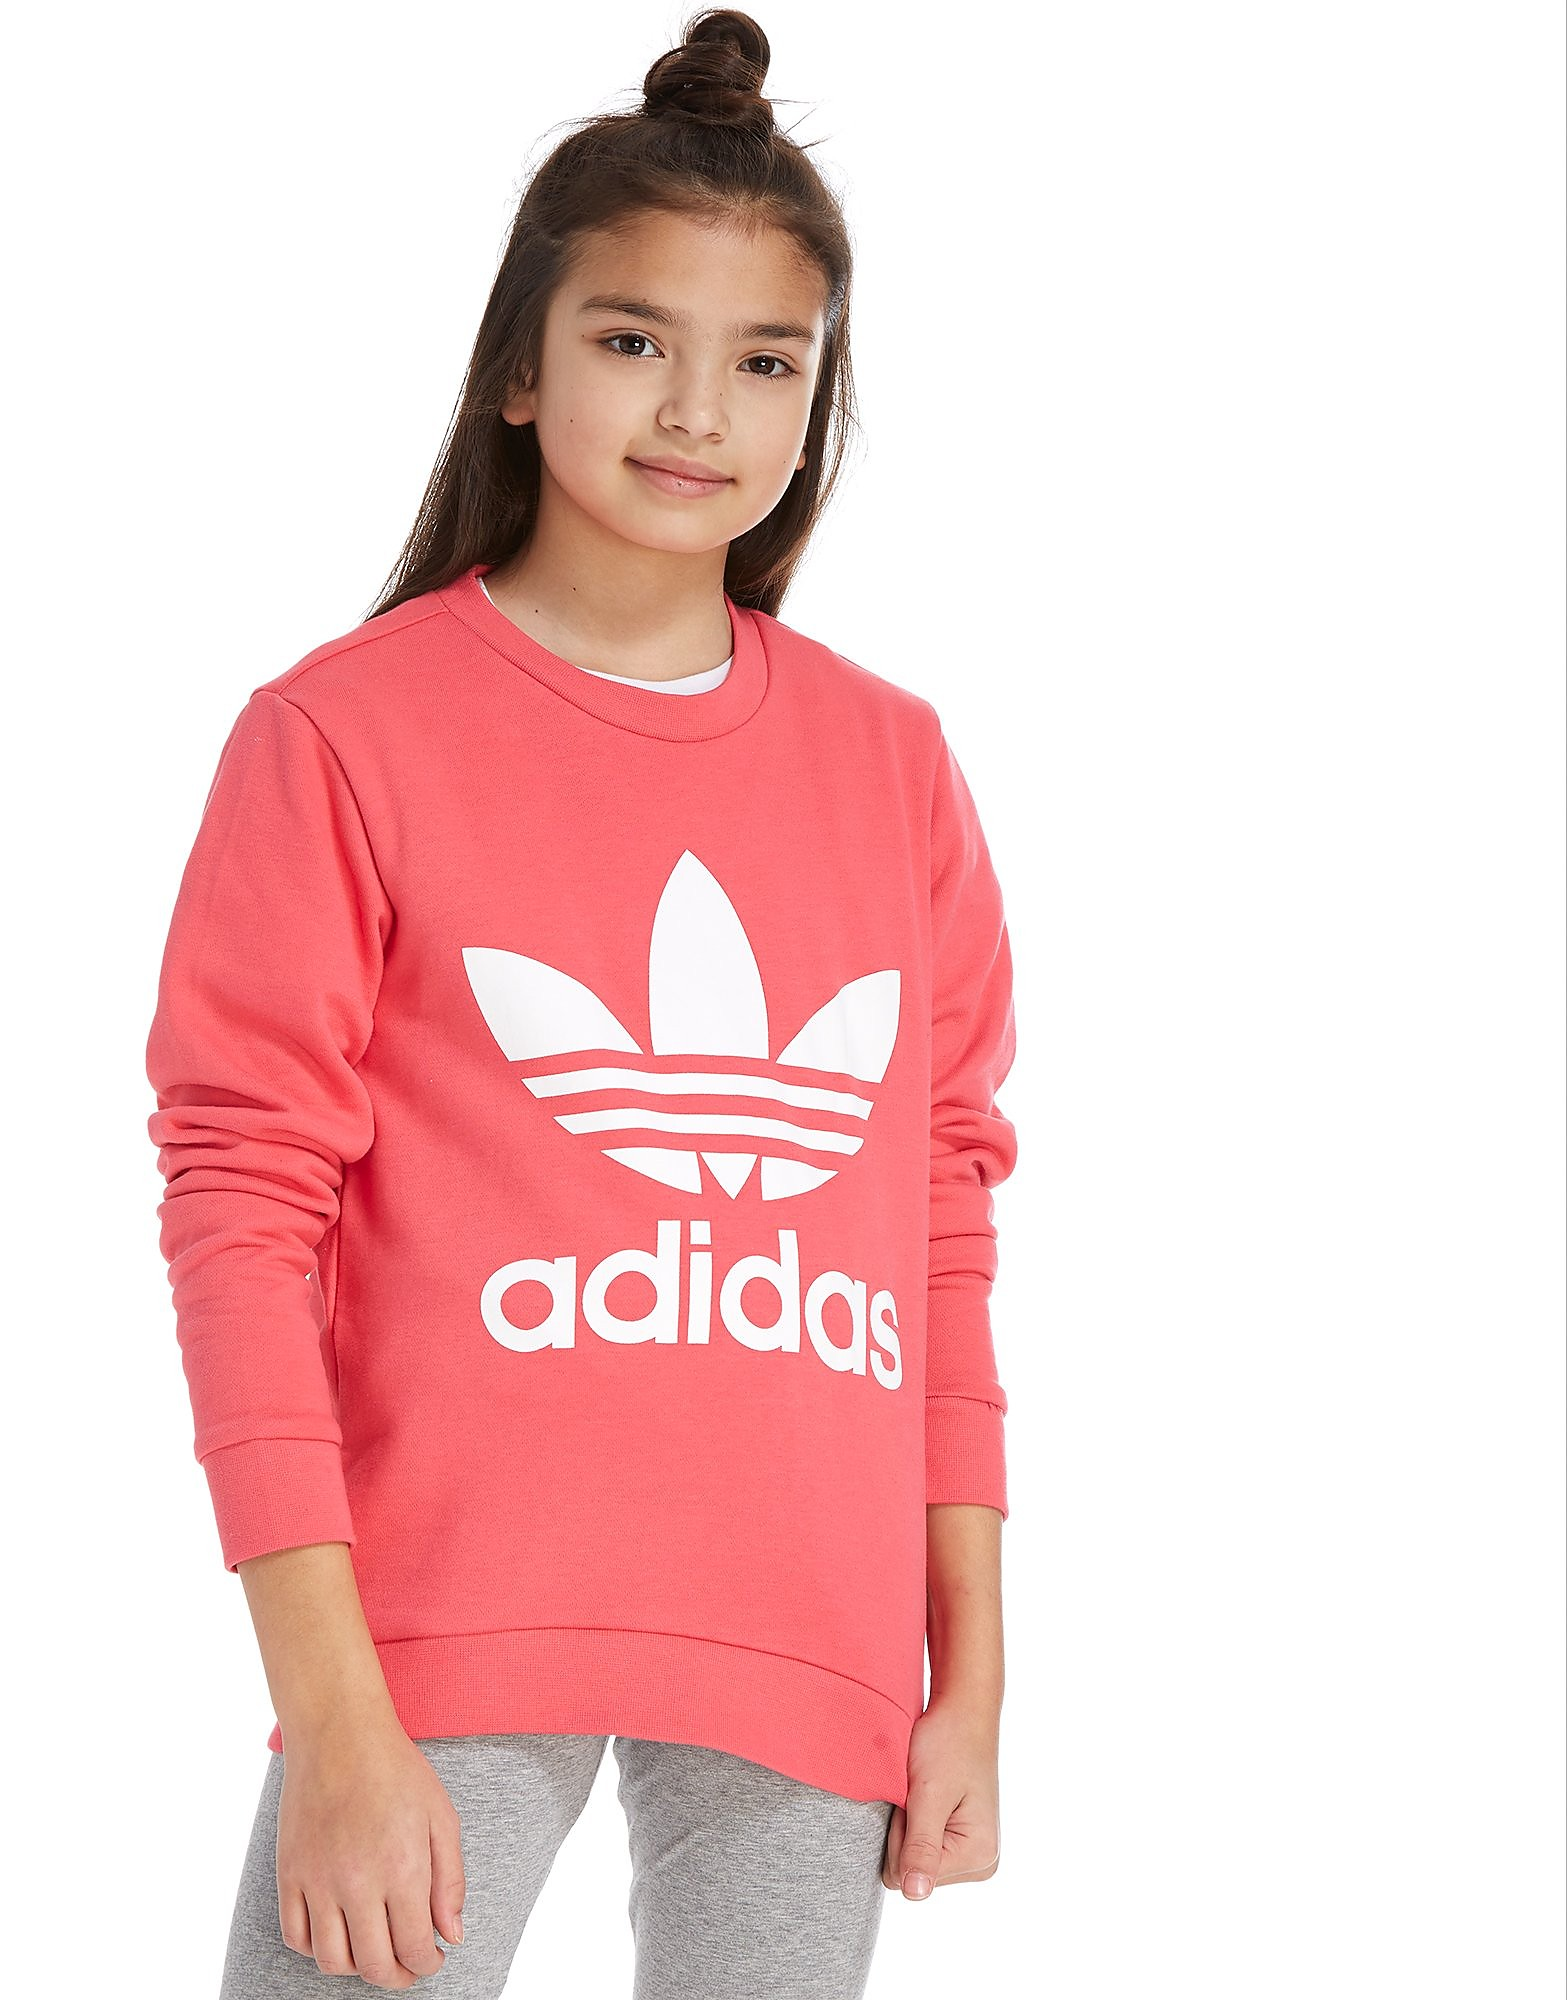 adidas Originals Sudadera júnior